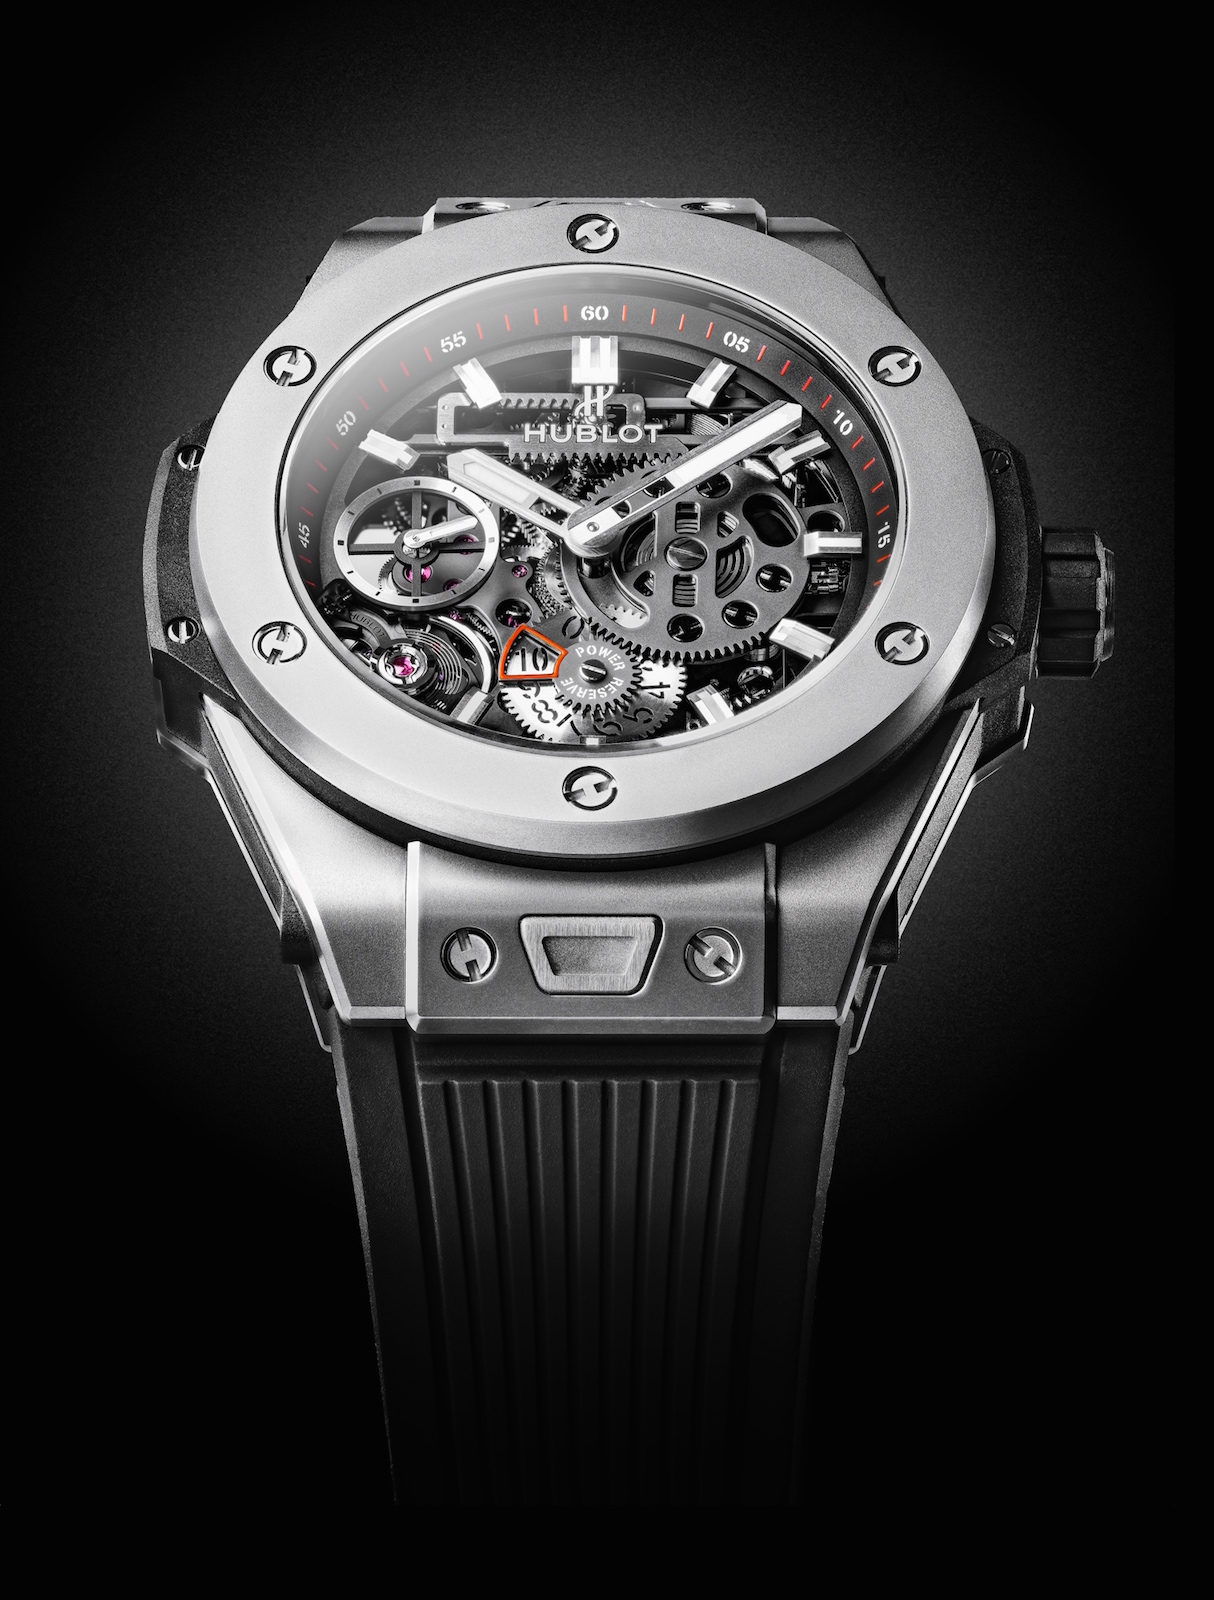 Hublot en Baselworld 2016 - Big Bang MECA-10 Titanium